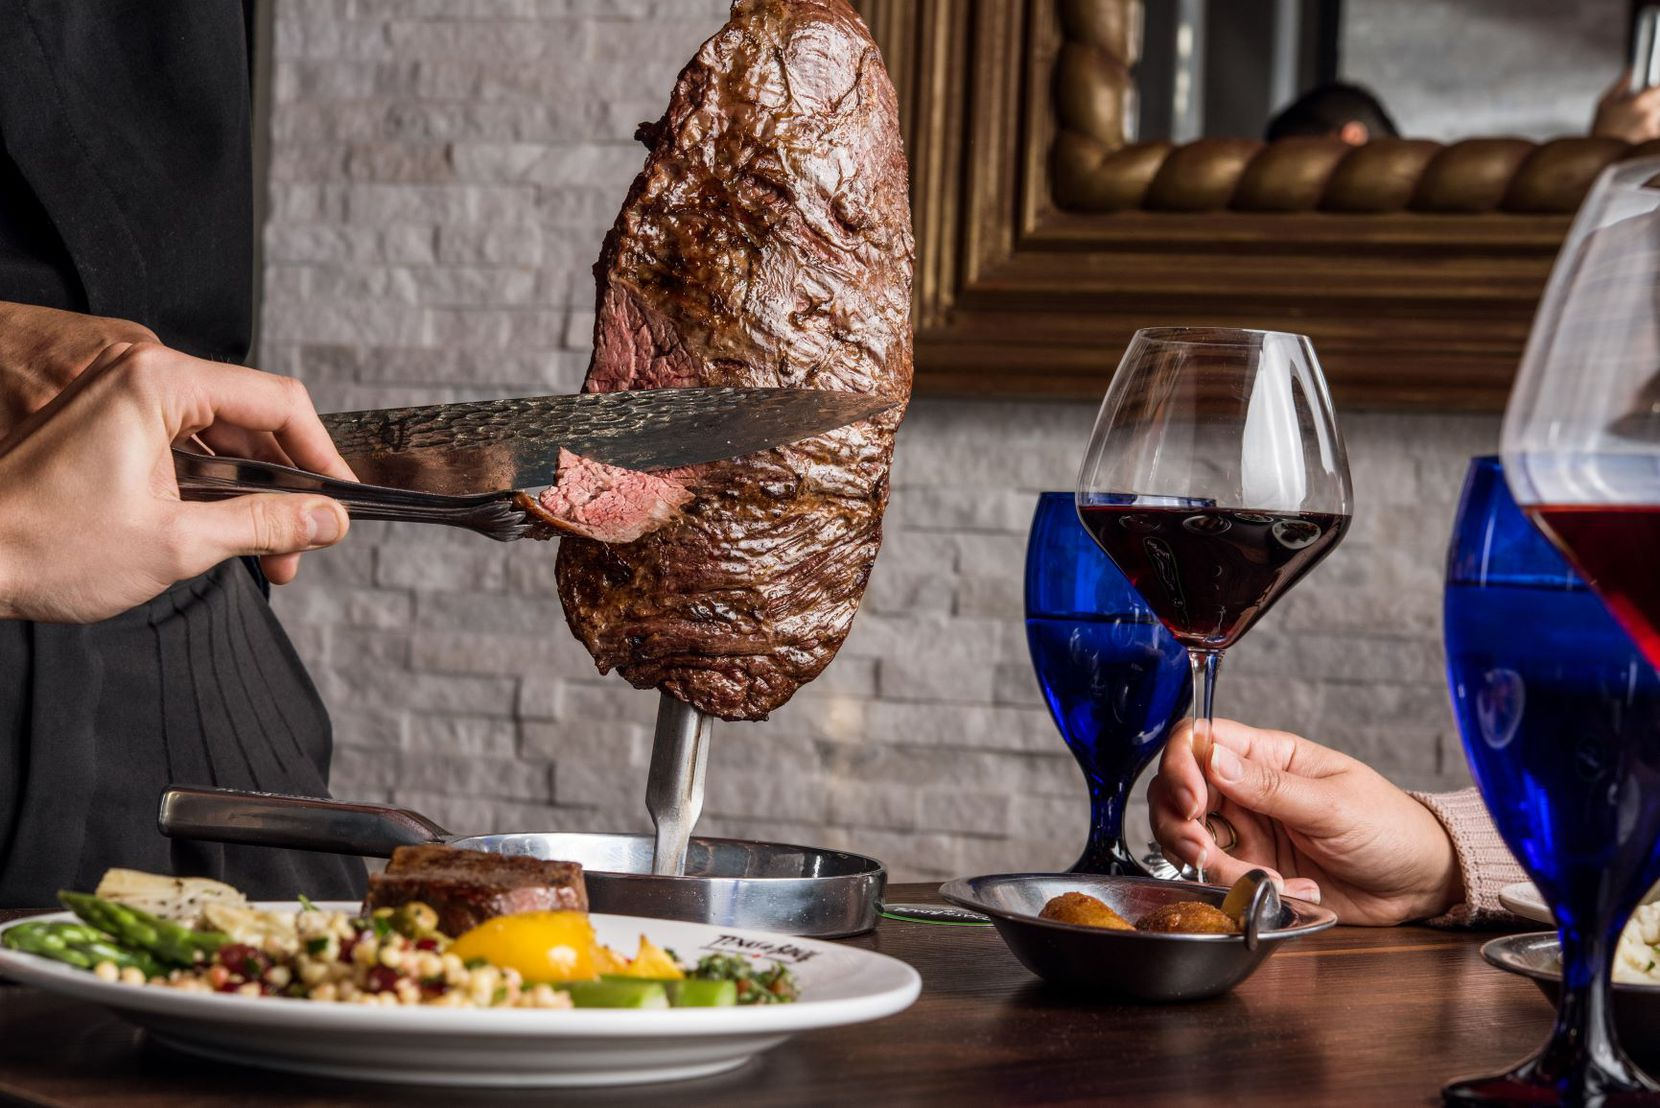 If you have big eaters in your family, consider Texas de Brazil, a Brazilian steakhouse that's serving traditional Thanksgiving food in addition to generous cuts of meat.